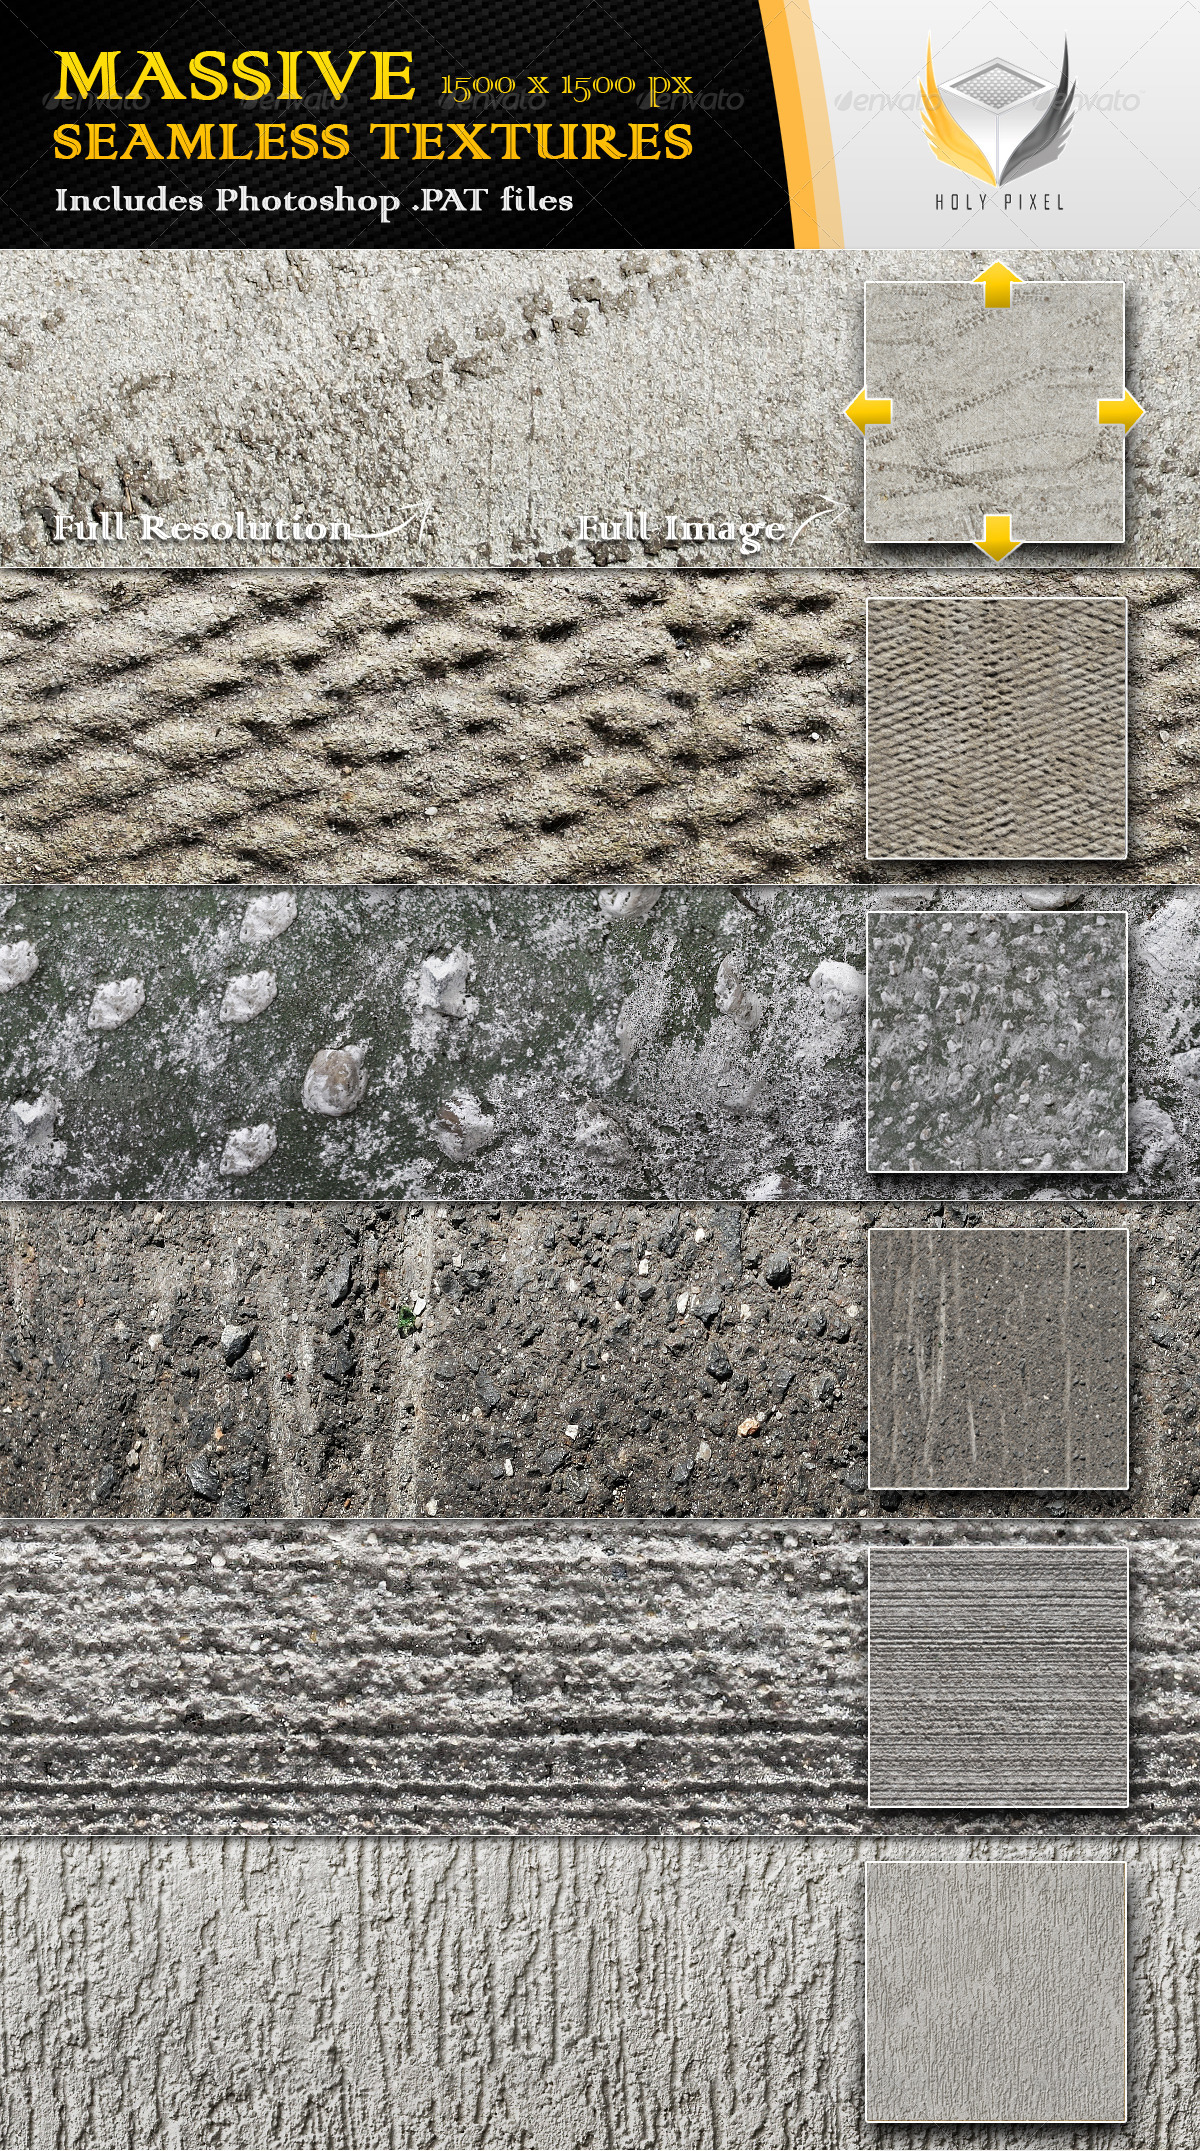 6 Seamless Concrete Textures 2 - Urban Textures / Fills / Patterns